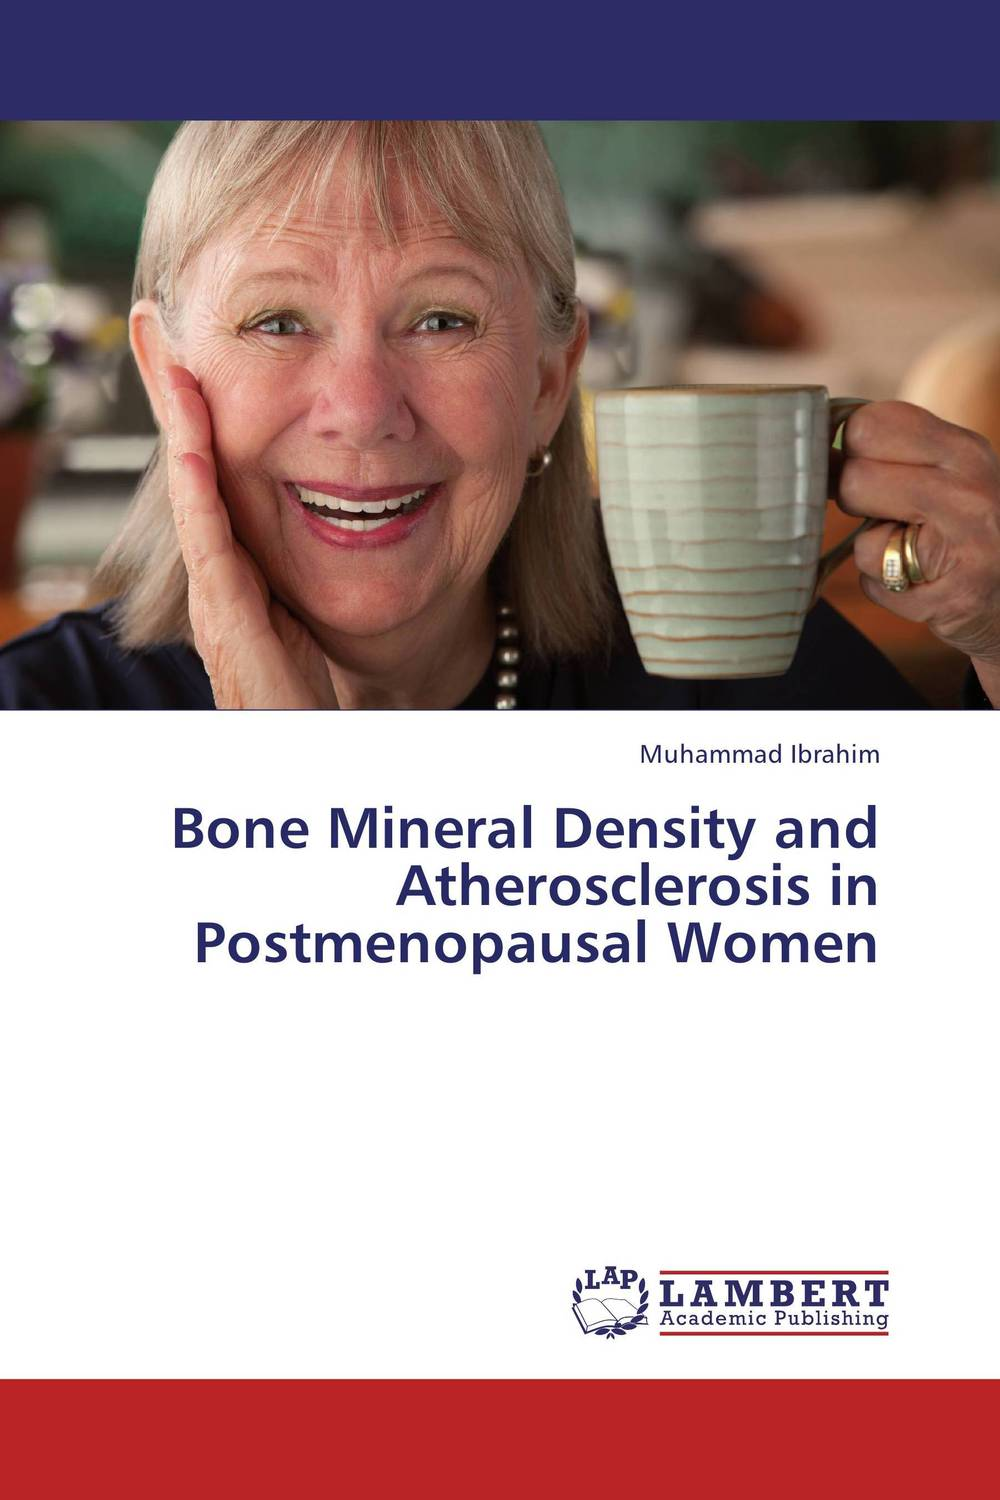 Bone Mineral Density and Atherosclerosis in Postmenopausal Women